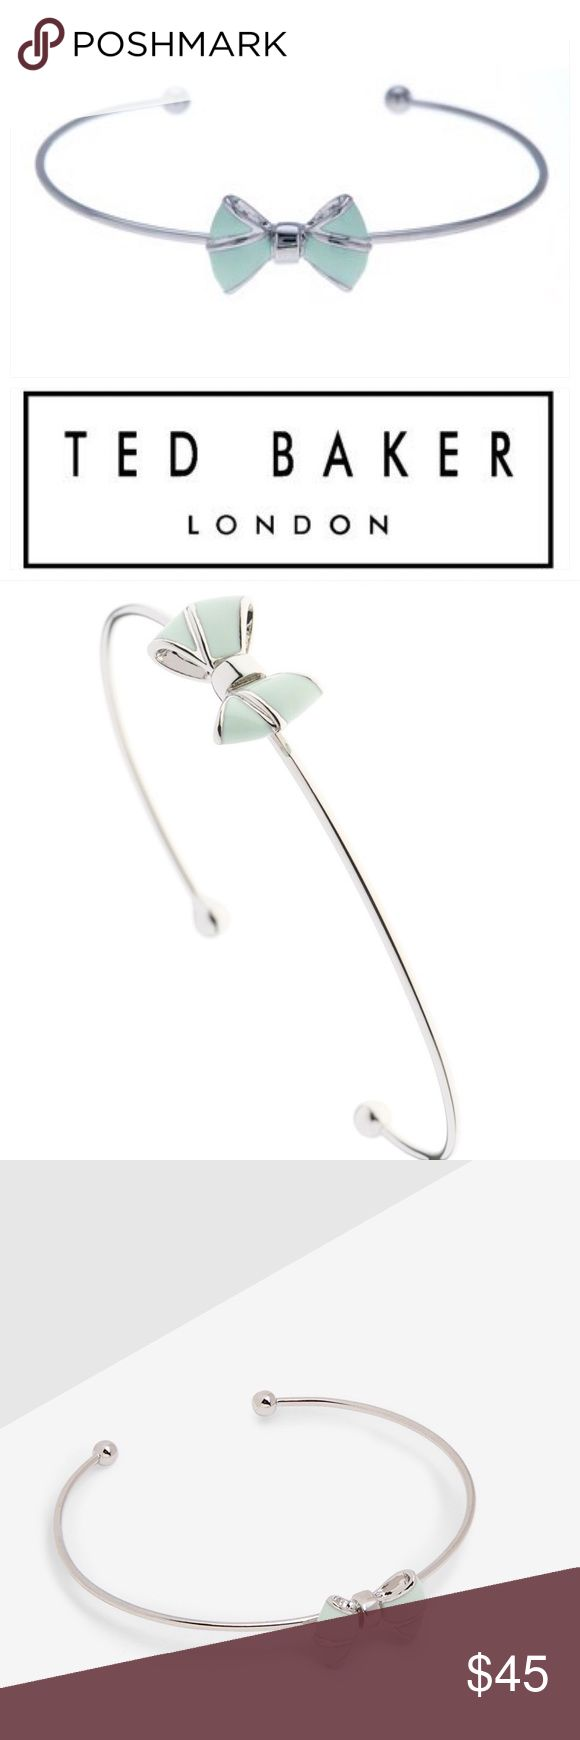 Ted Baker Edene Baby Bow Cuff Bracelet in Mint Styled in mint green enamel and placed on a feminine cuff bracelet, this distinctive finishing touch will stand out when worn with any ensemble. Enamel bow detailing Comes in Ted Baker packaging Mint: white metal, brass and enamel with white bronze plating.  Feminine and elegant while being understated. Goes with another listing w matching earrings and necklace. Brand new, in Ted Baker packaging, giftable condition!  Non-smoking home and…